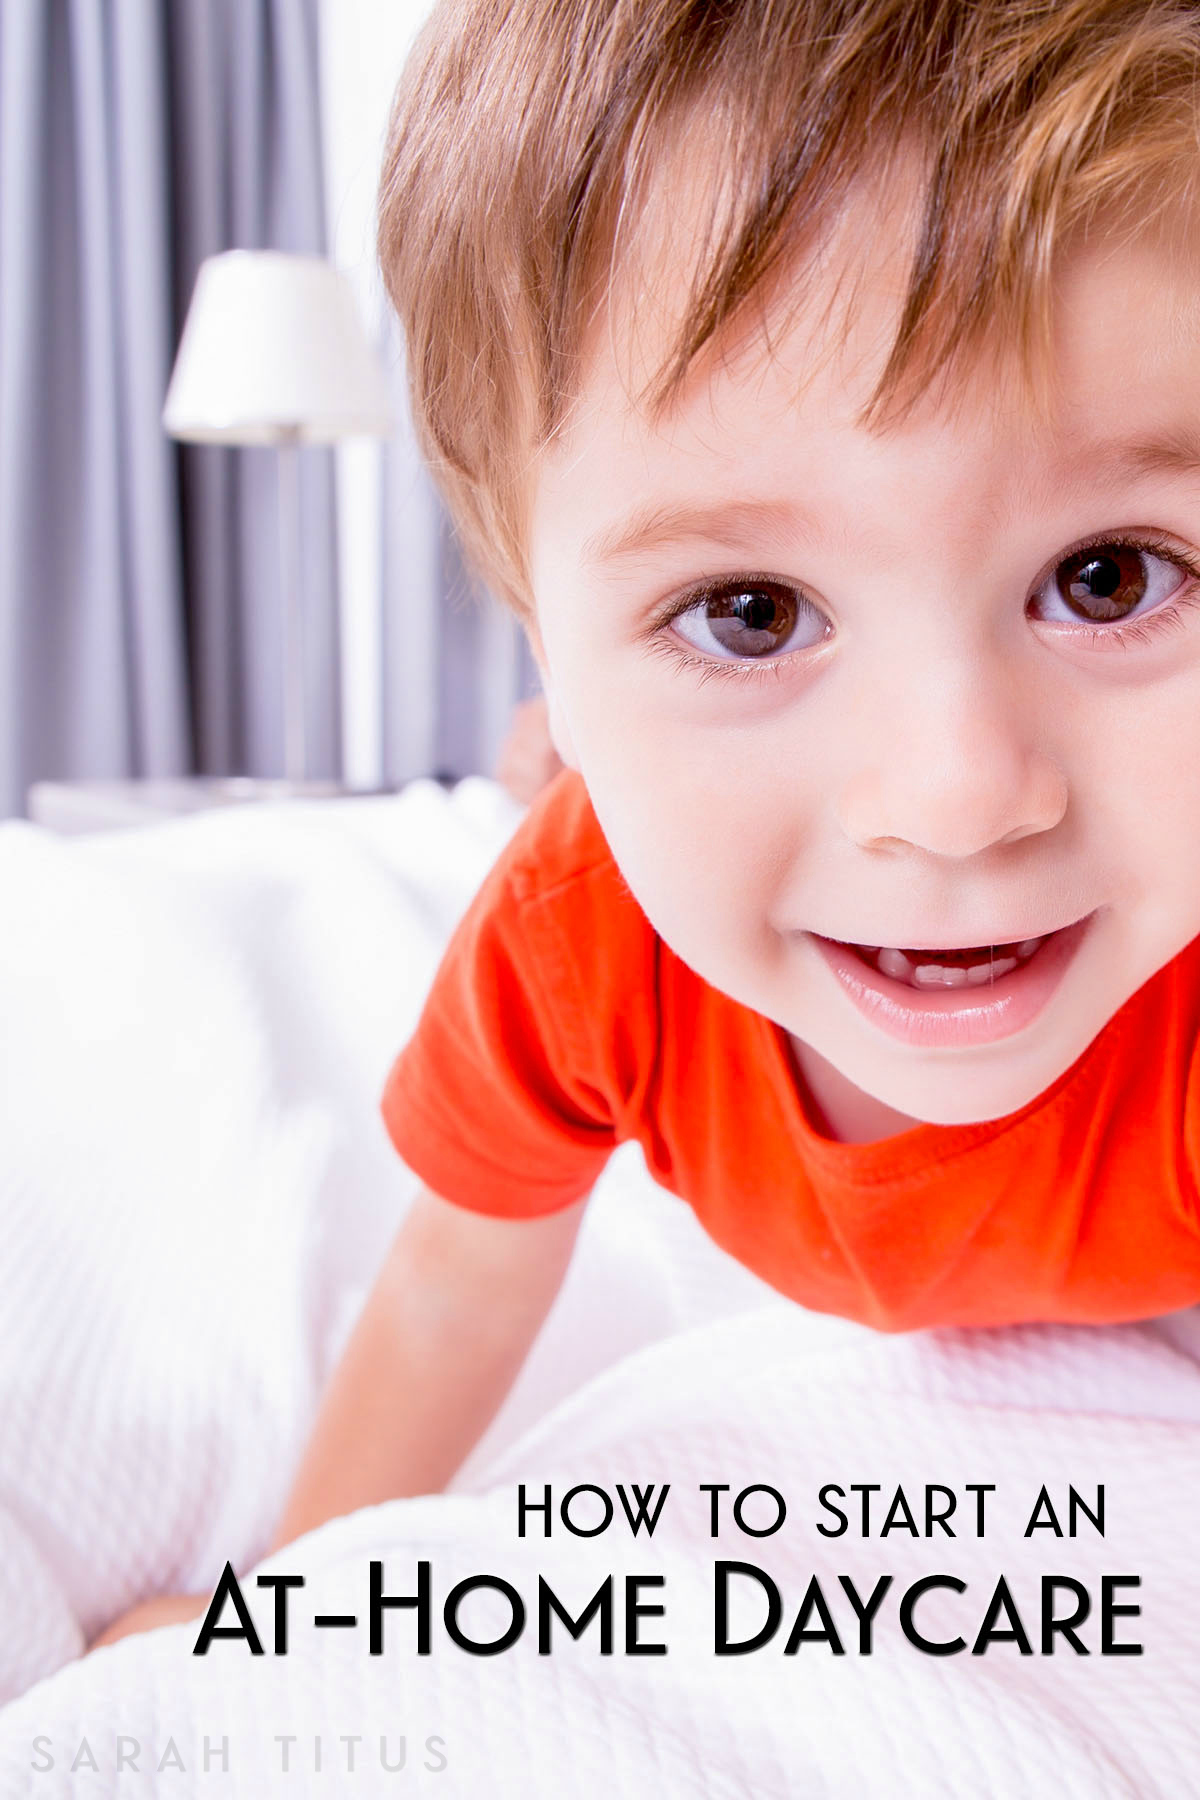 How to Start An At-Home Daycare